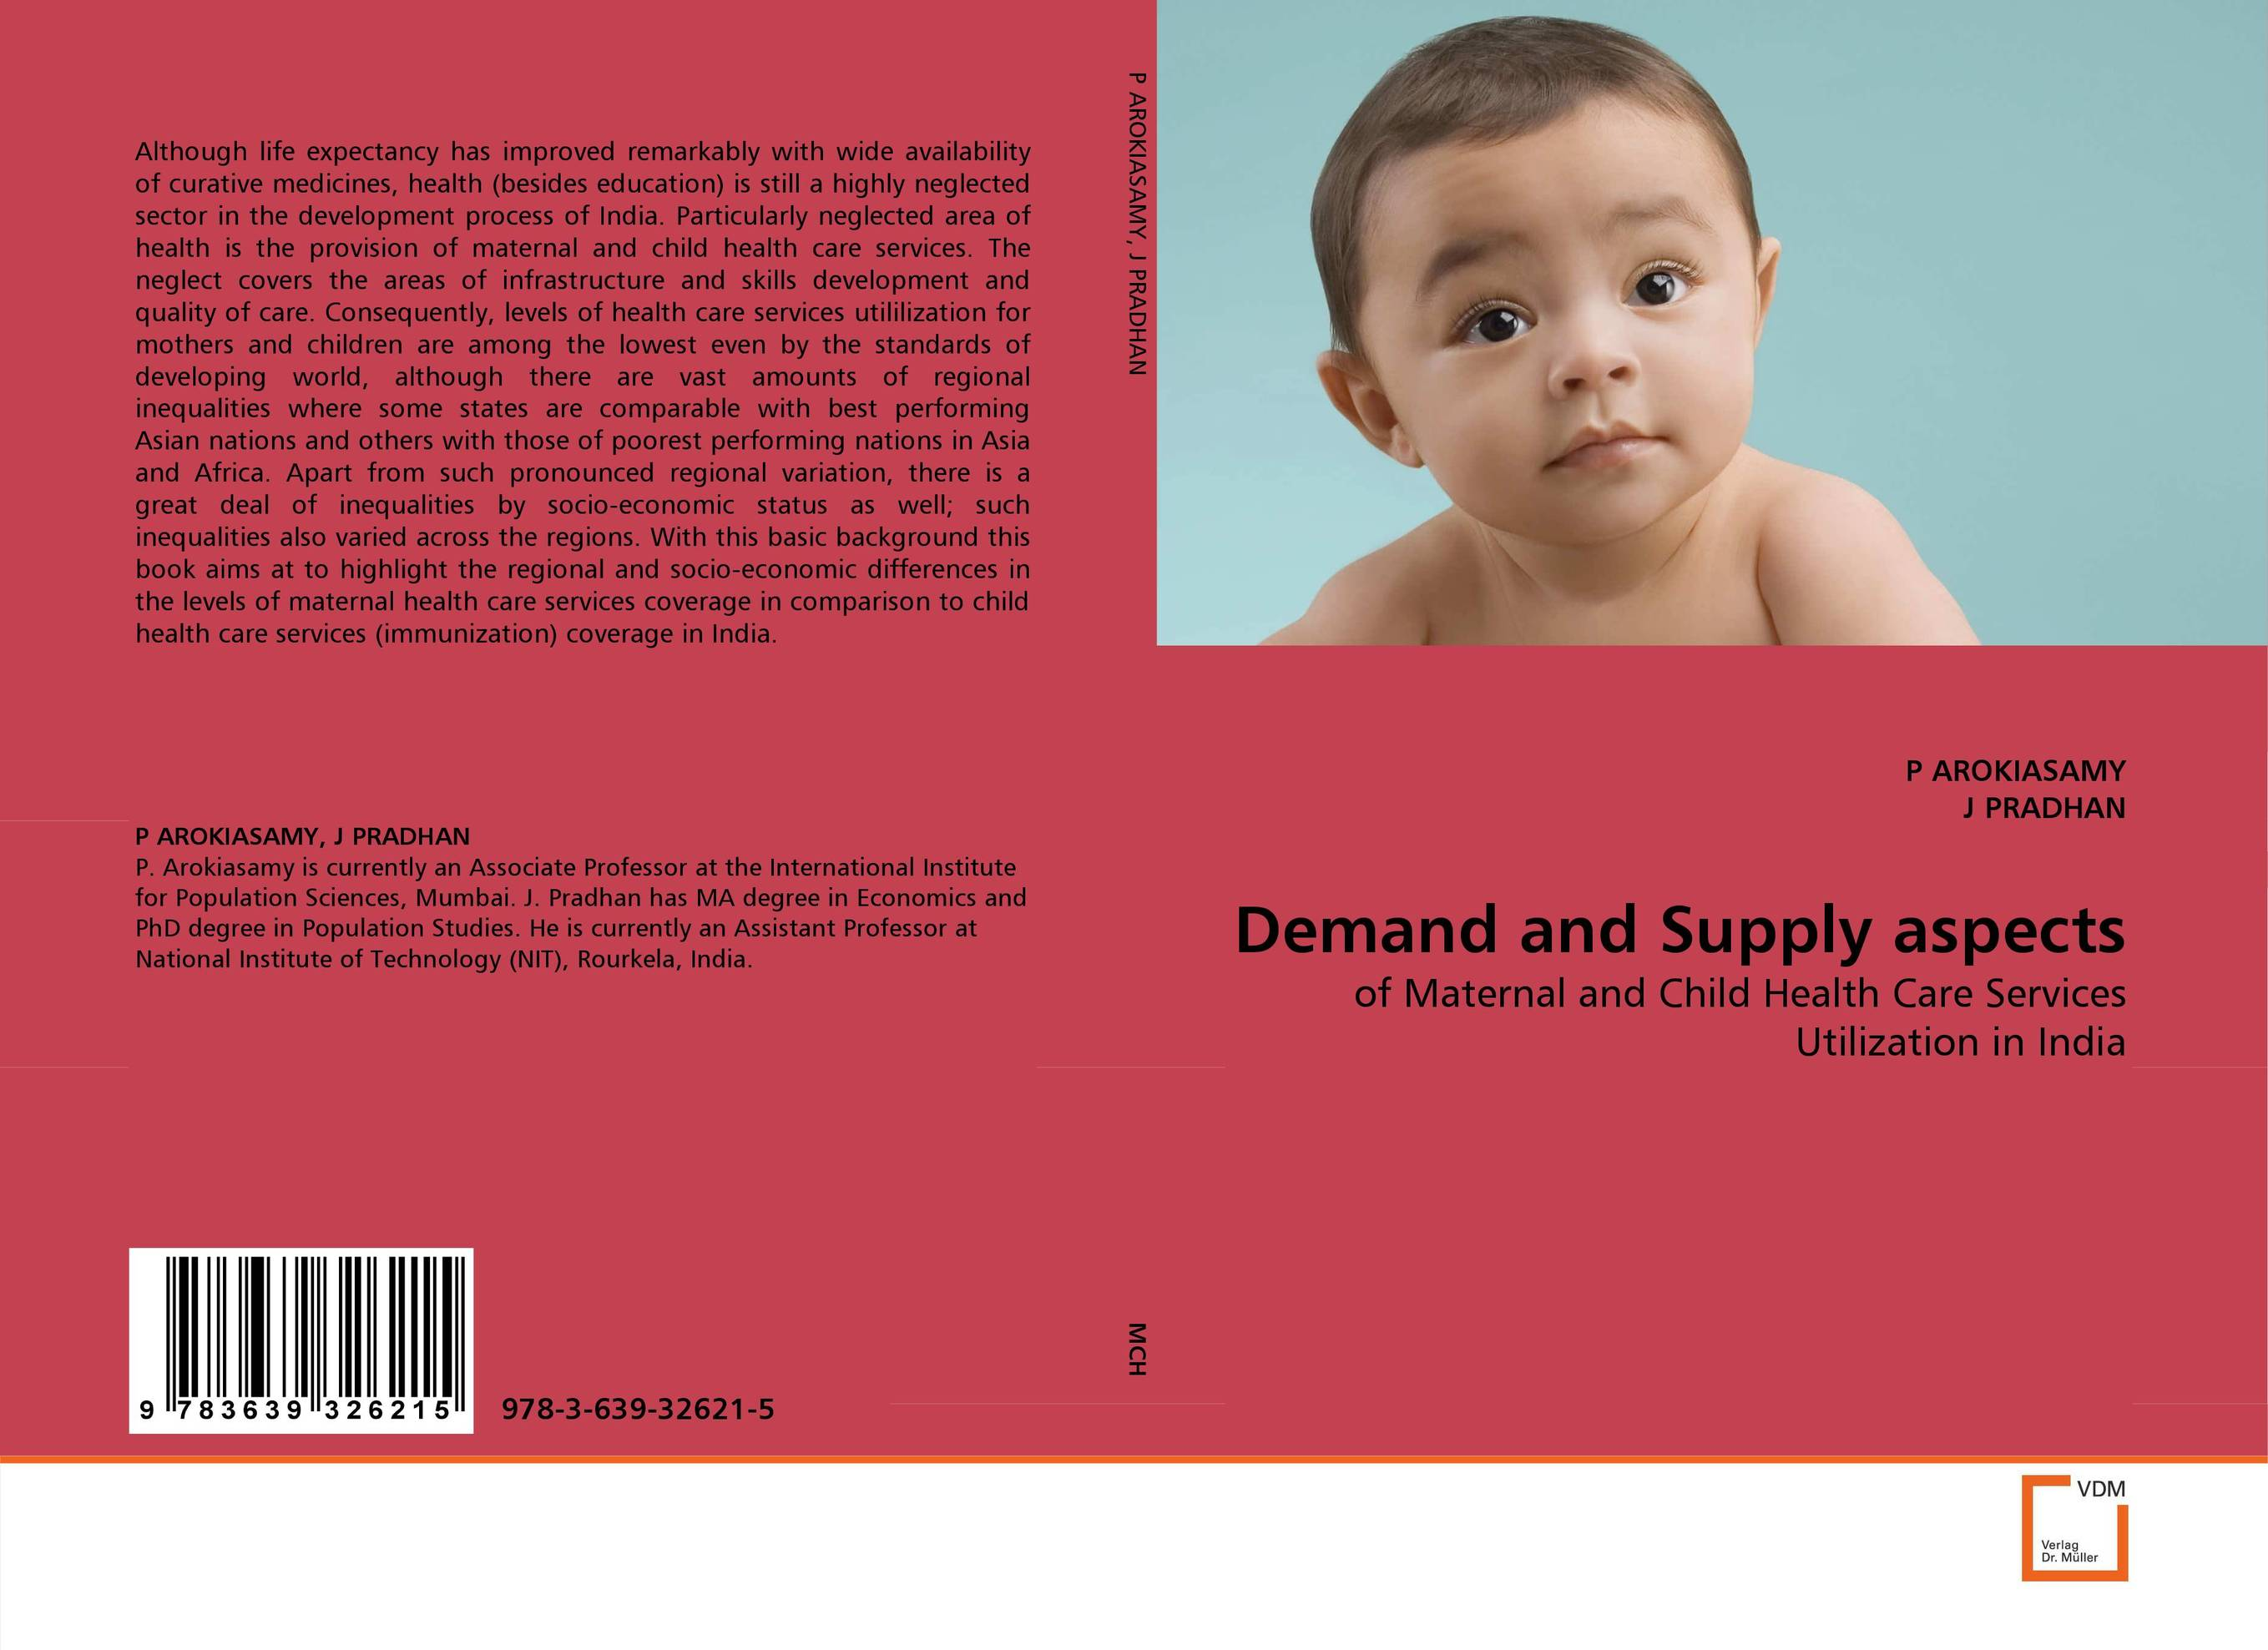 Demand and Supply aspects